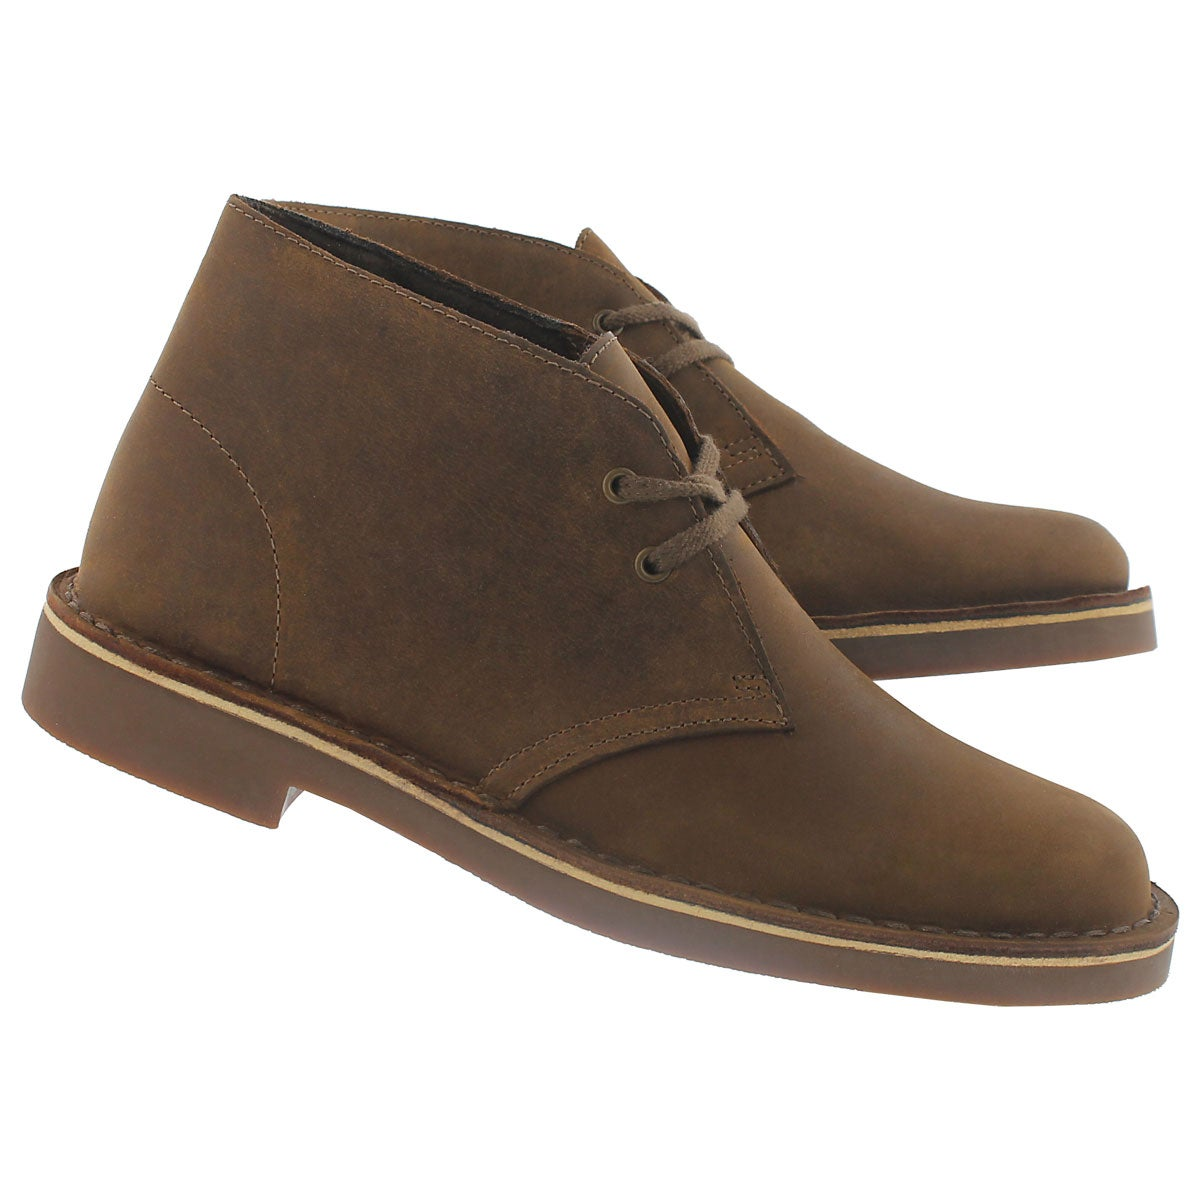 Lds Acre Bridge tan casual chukka boot